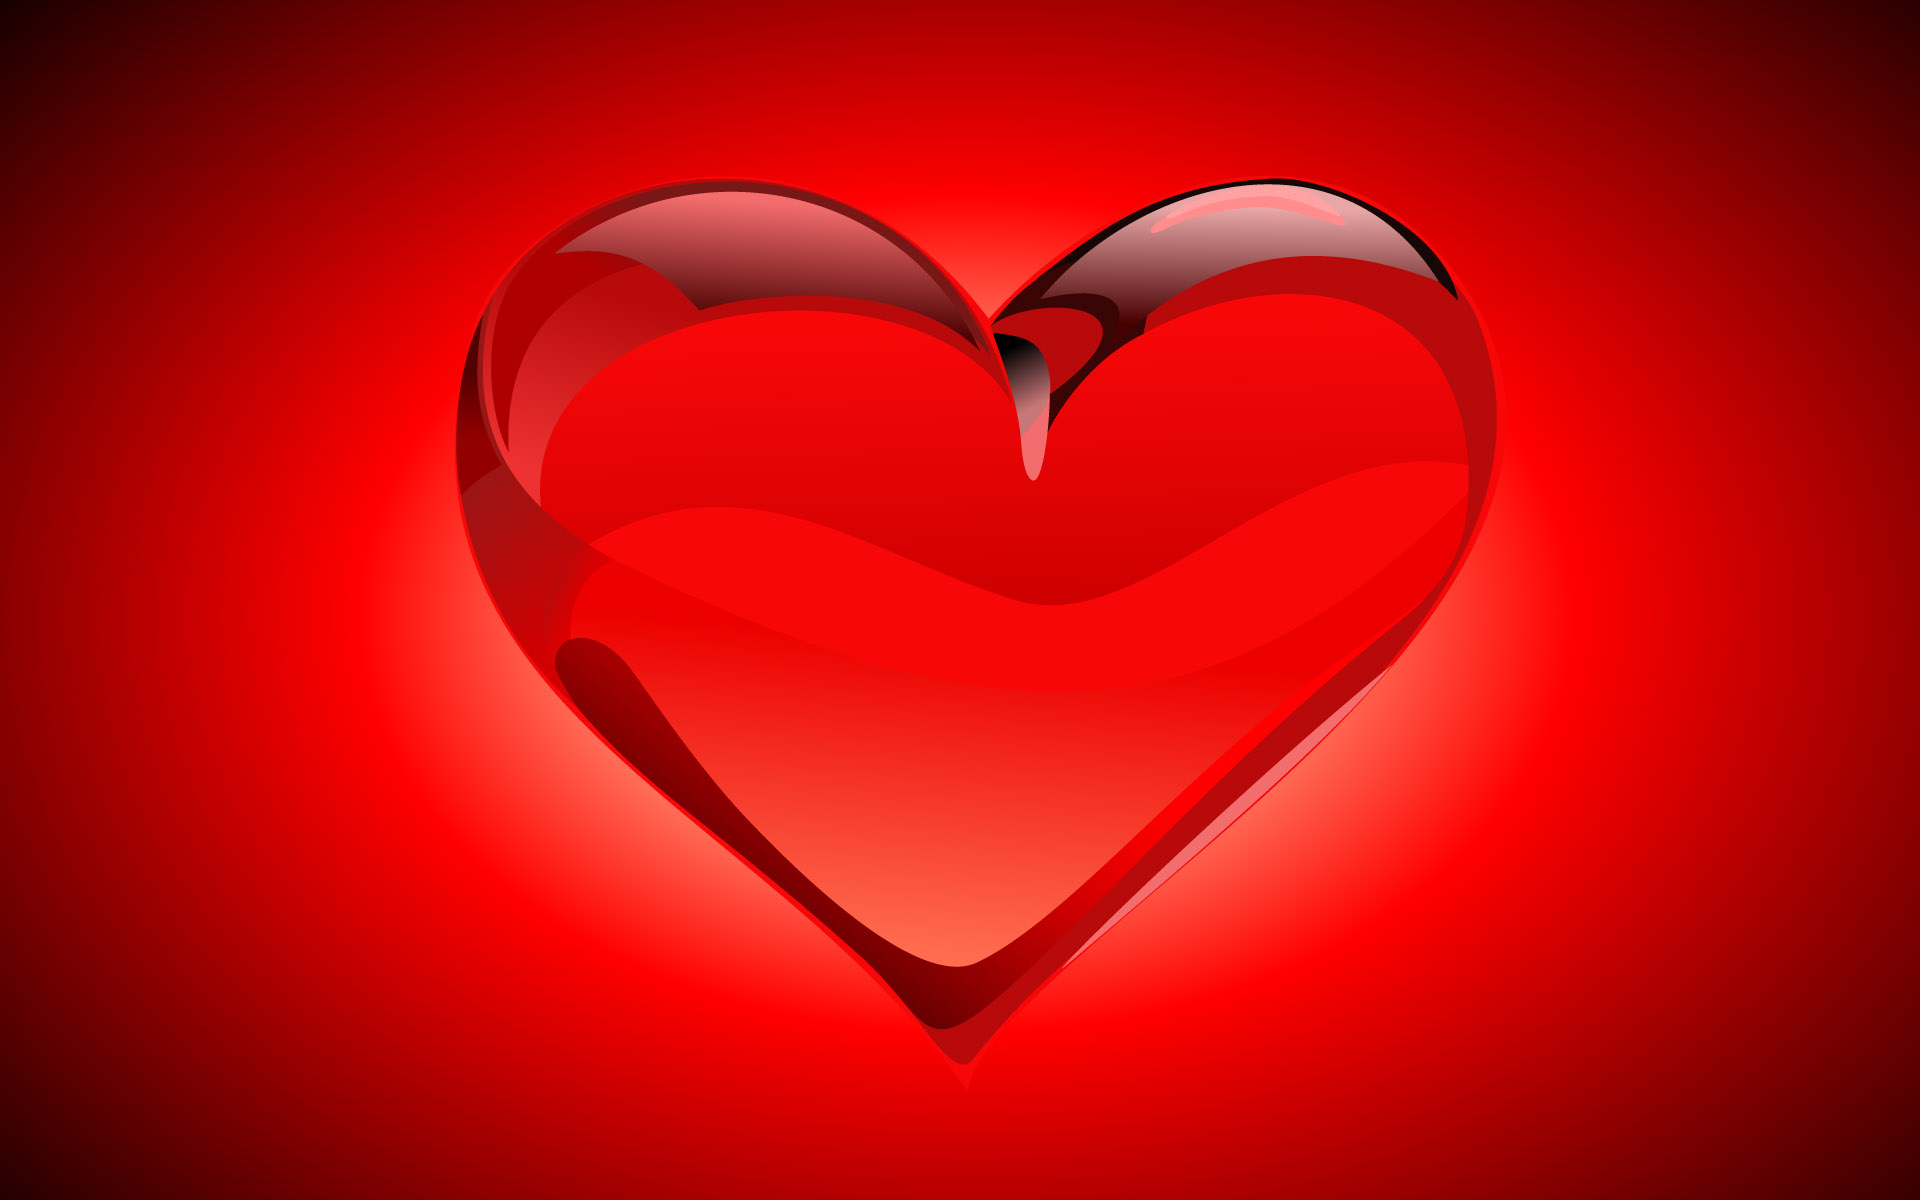 HEART WALLPAPERS FREE Wallpapers Background images   hippowallpapers 1920x1200